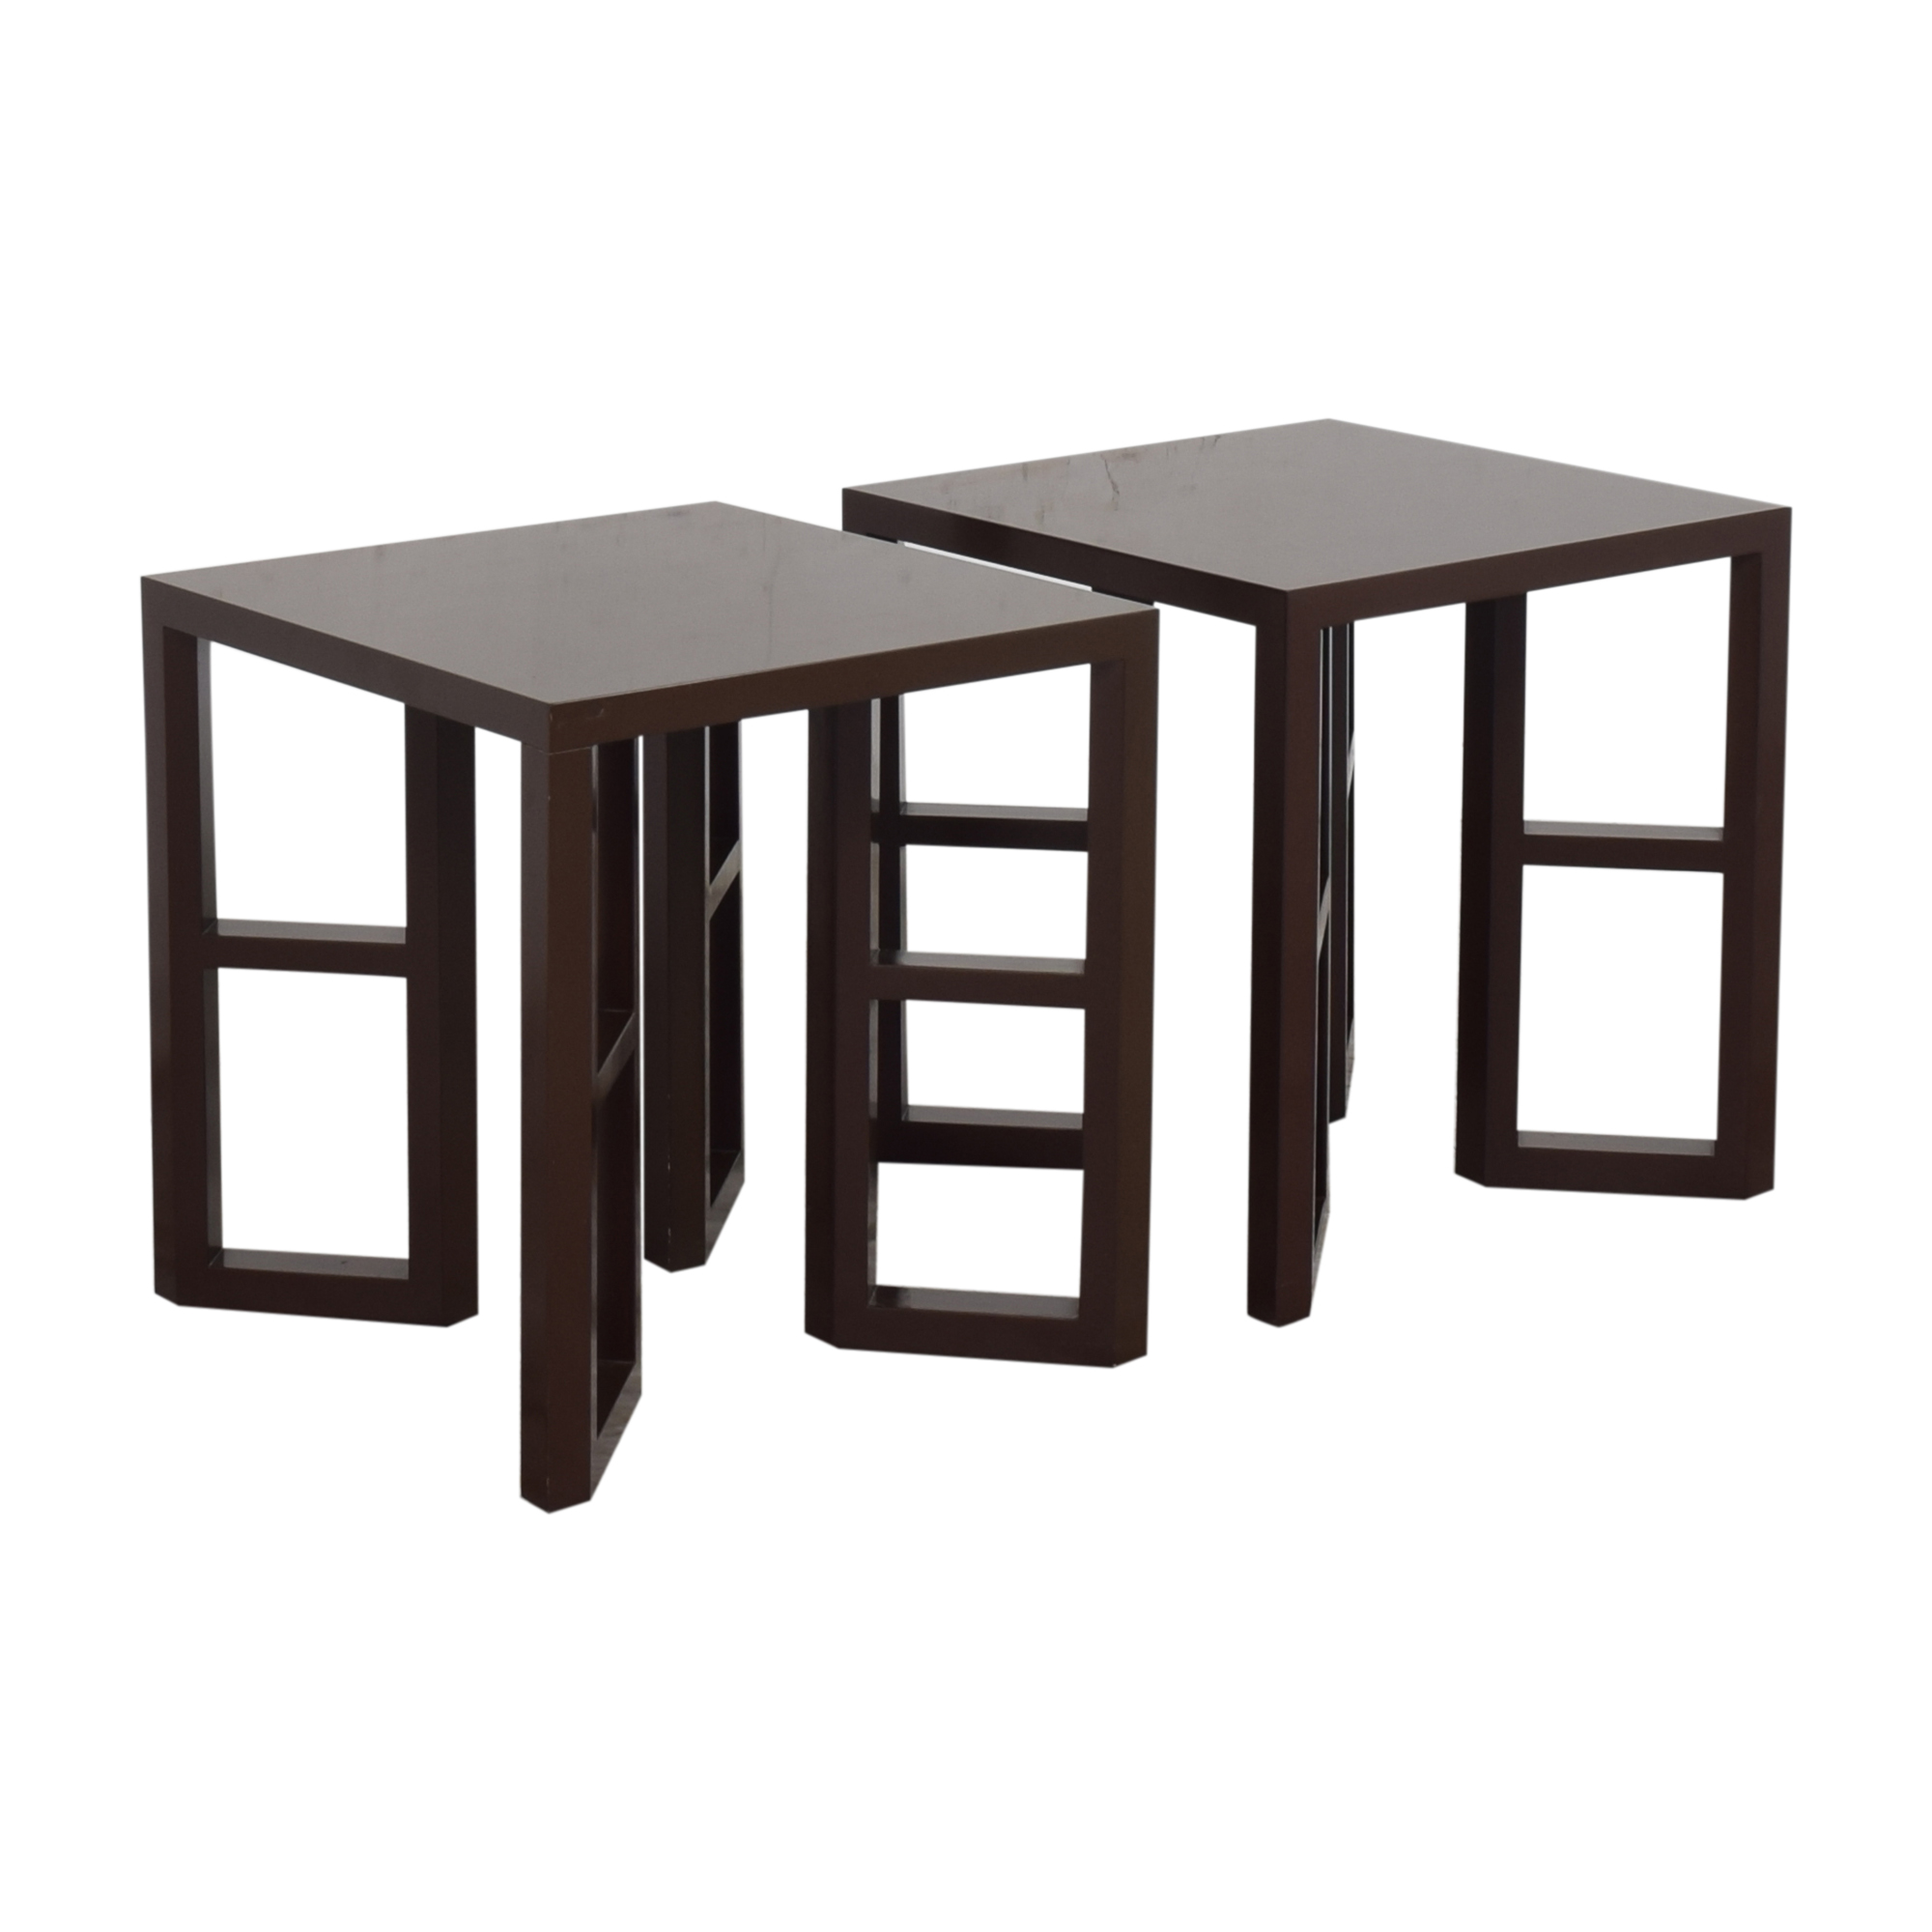 Bungalow 5 Bungalow 5 Modern Side Tables used